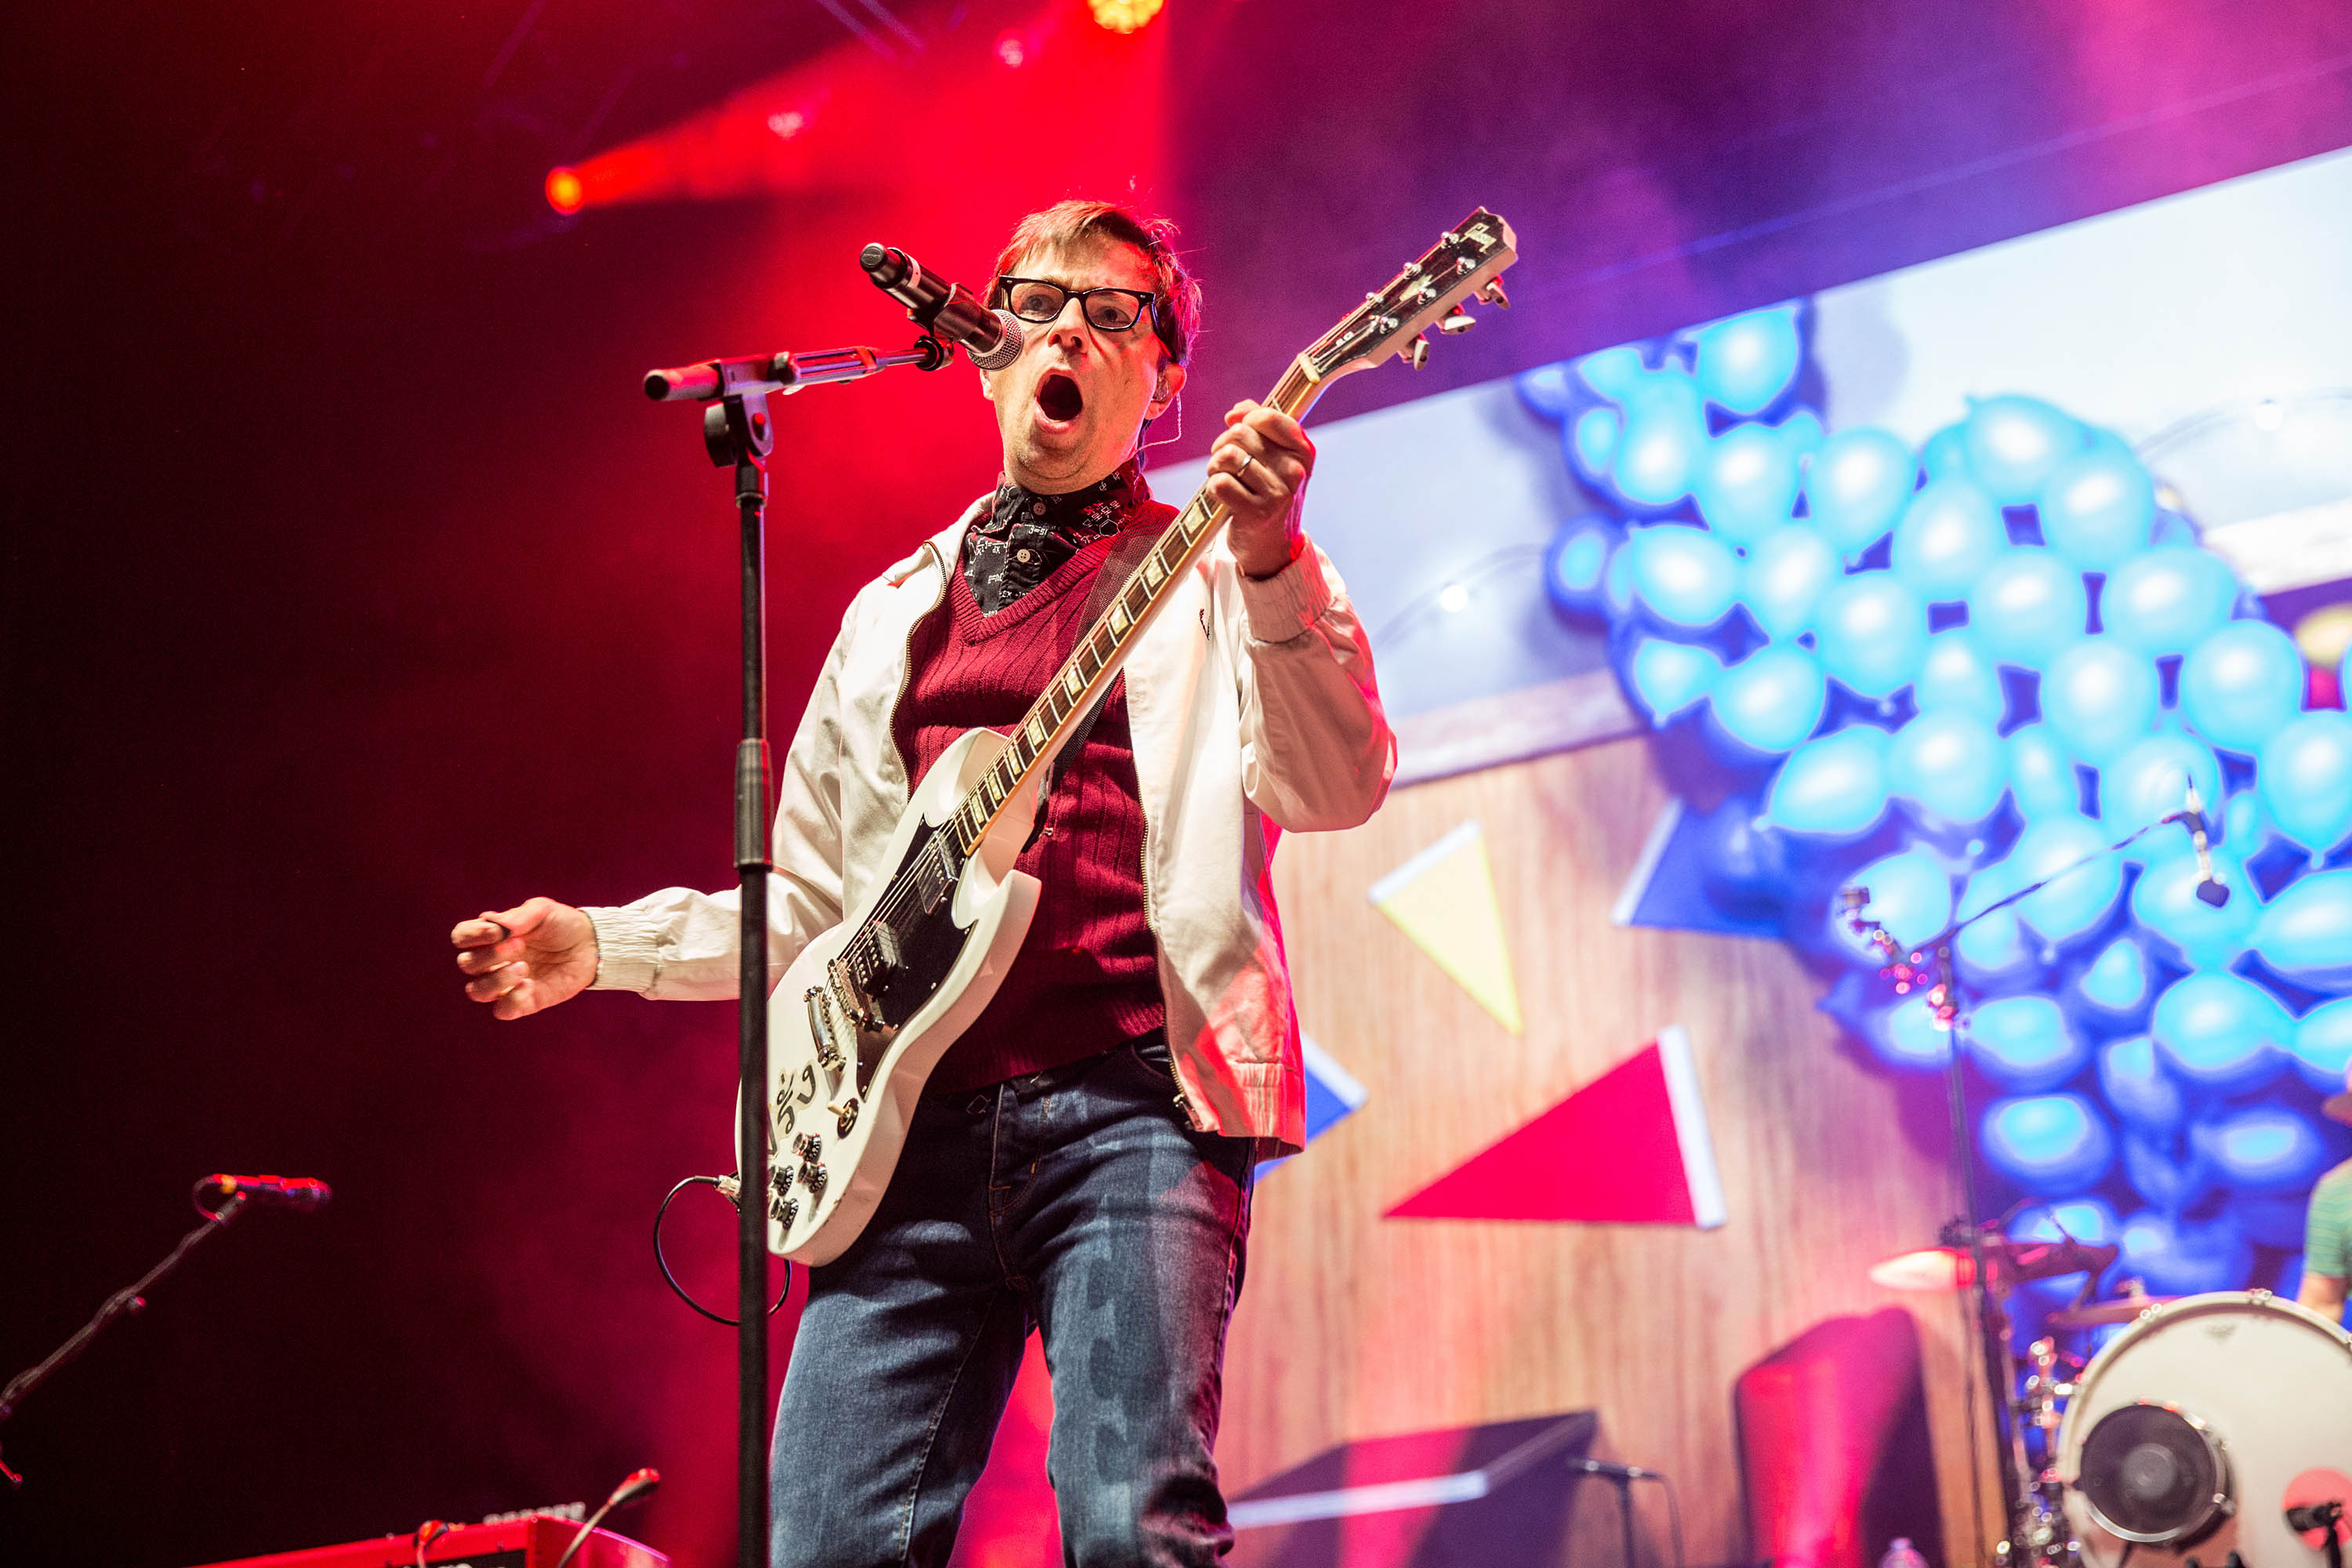 Weezer cover Blink-182's 'All The Small Things' at Riot Fest